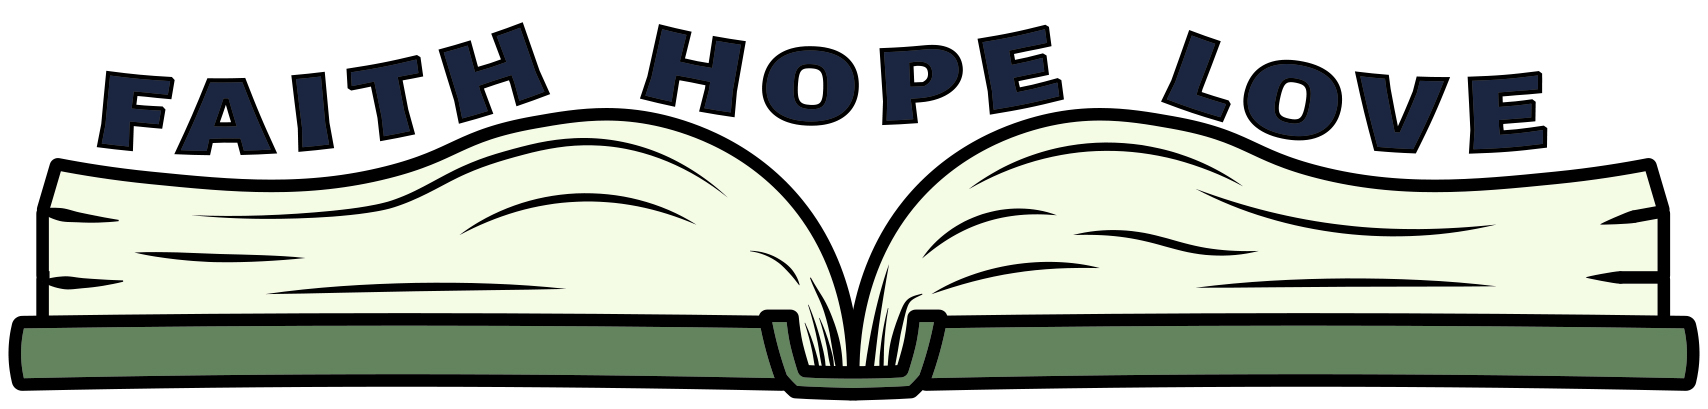 denisemcolby faith hope love with book logo